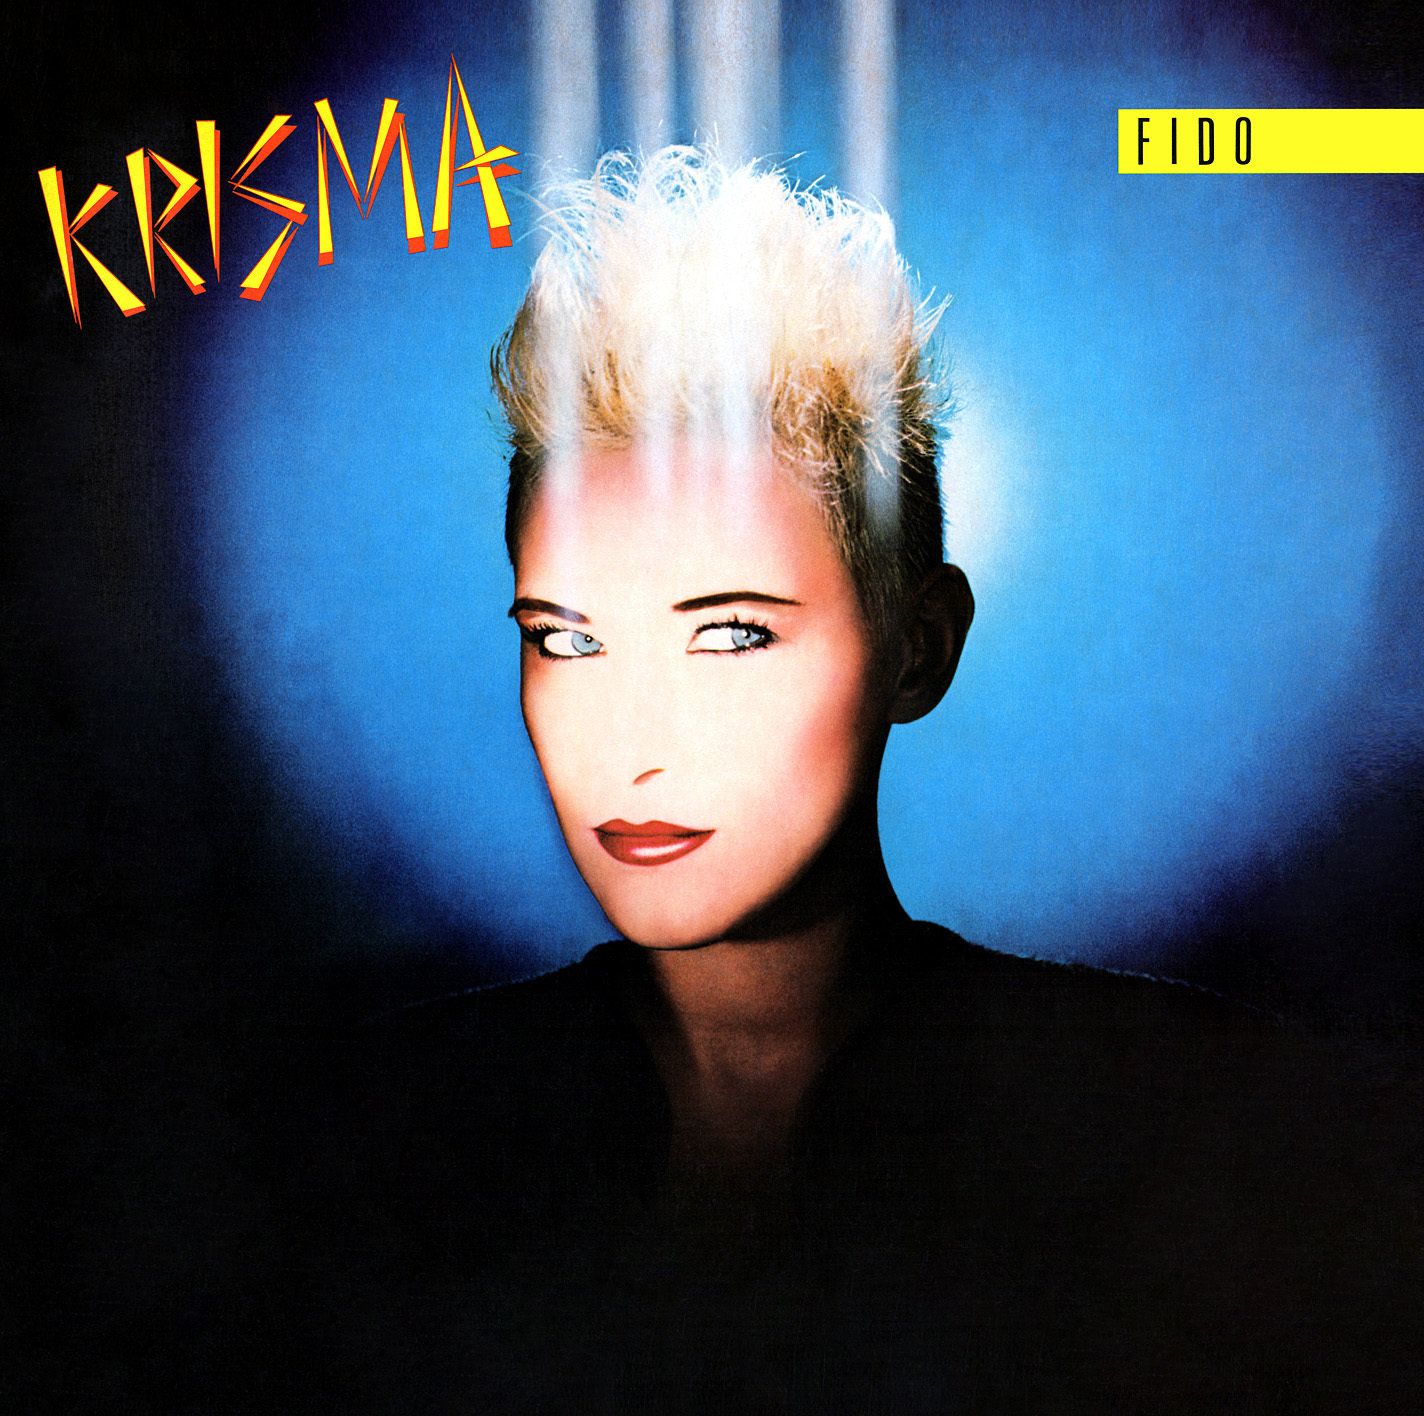 Krisma / Fido CD (Expanded Edition)